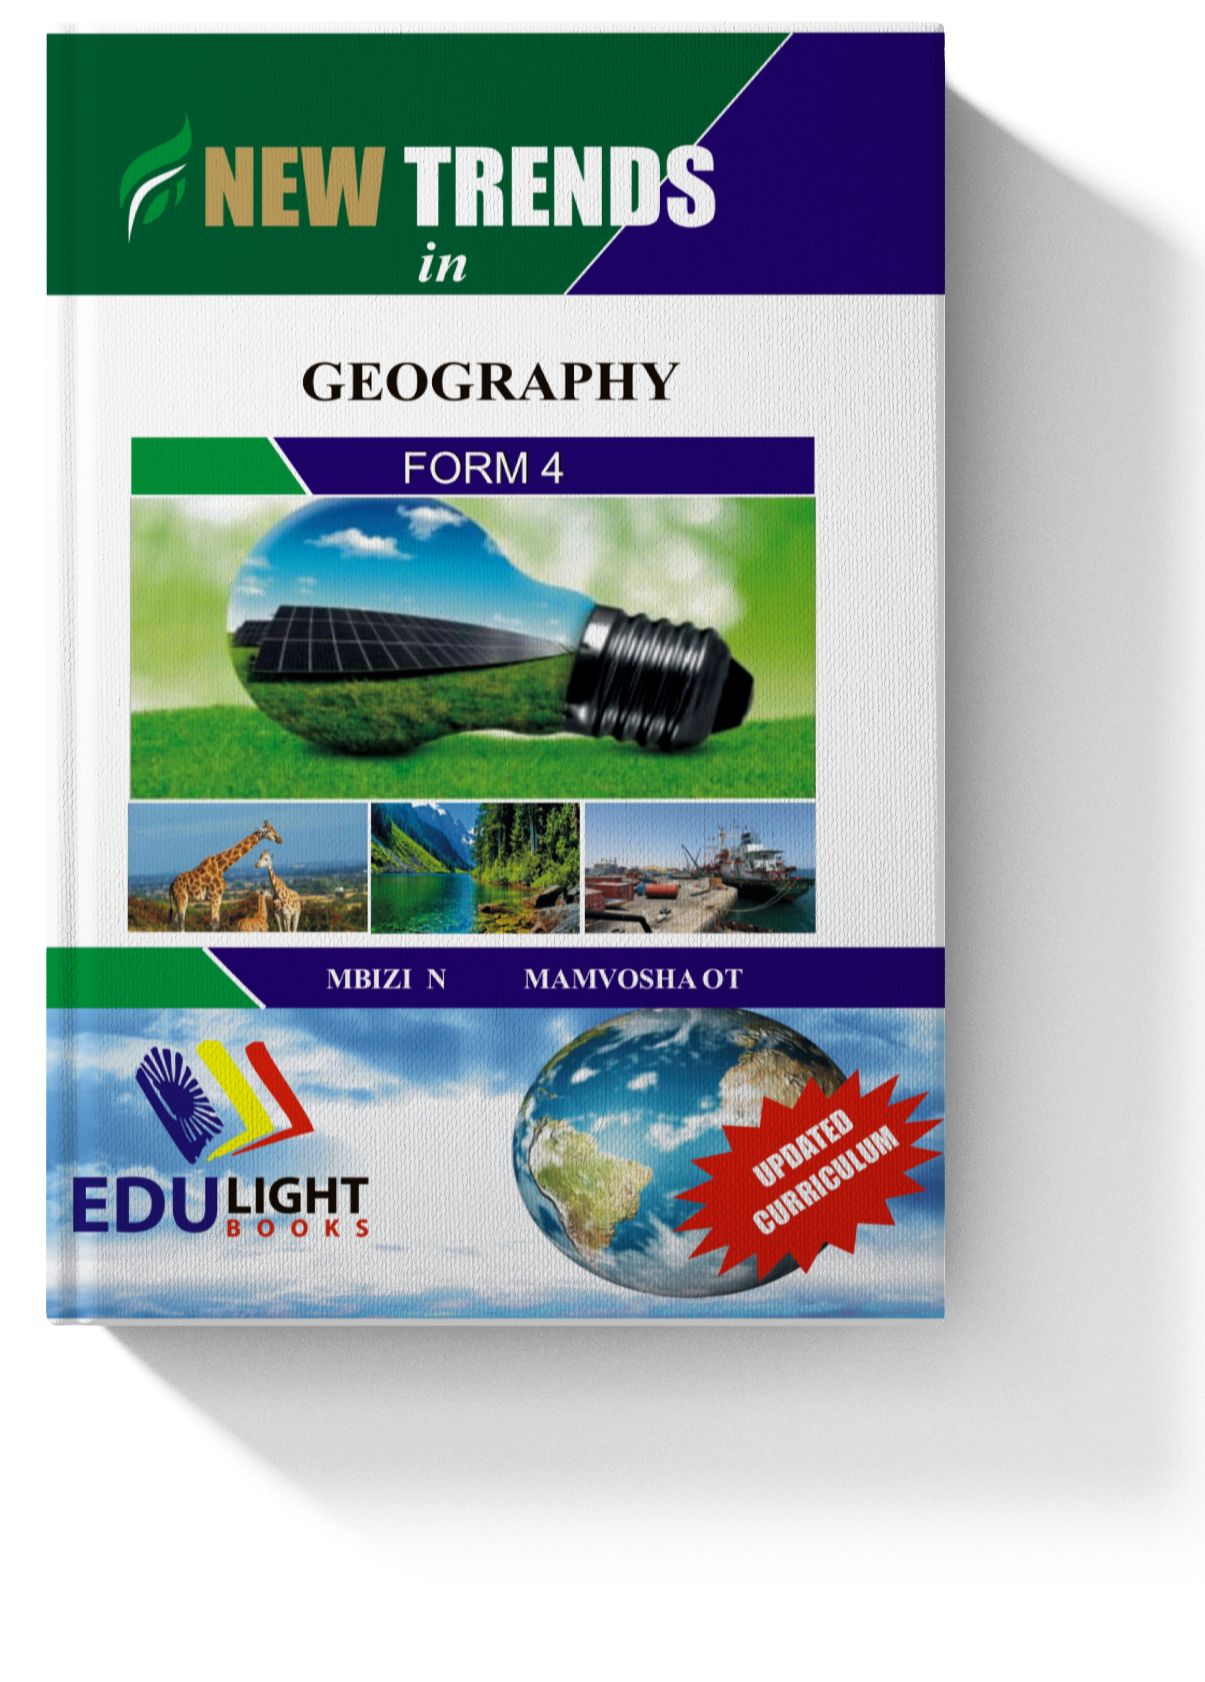 New Trends in Geography Form 4